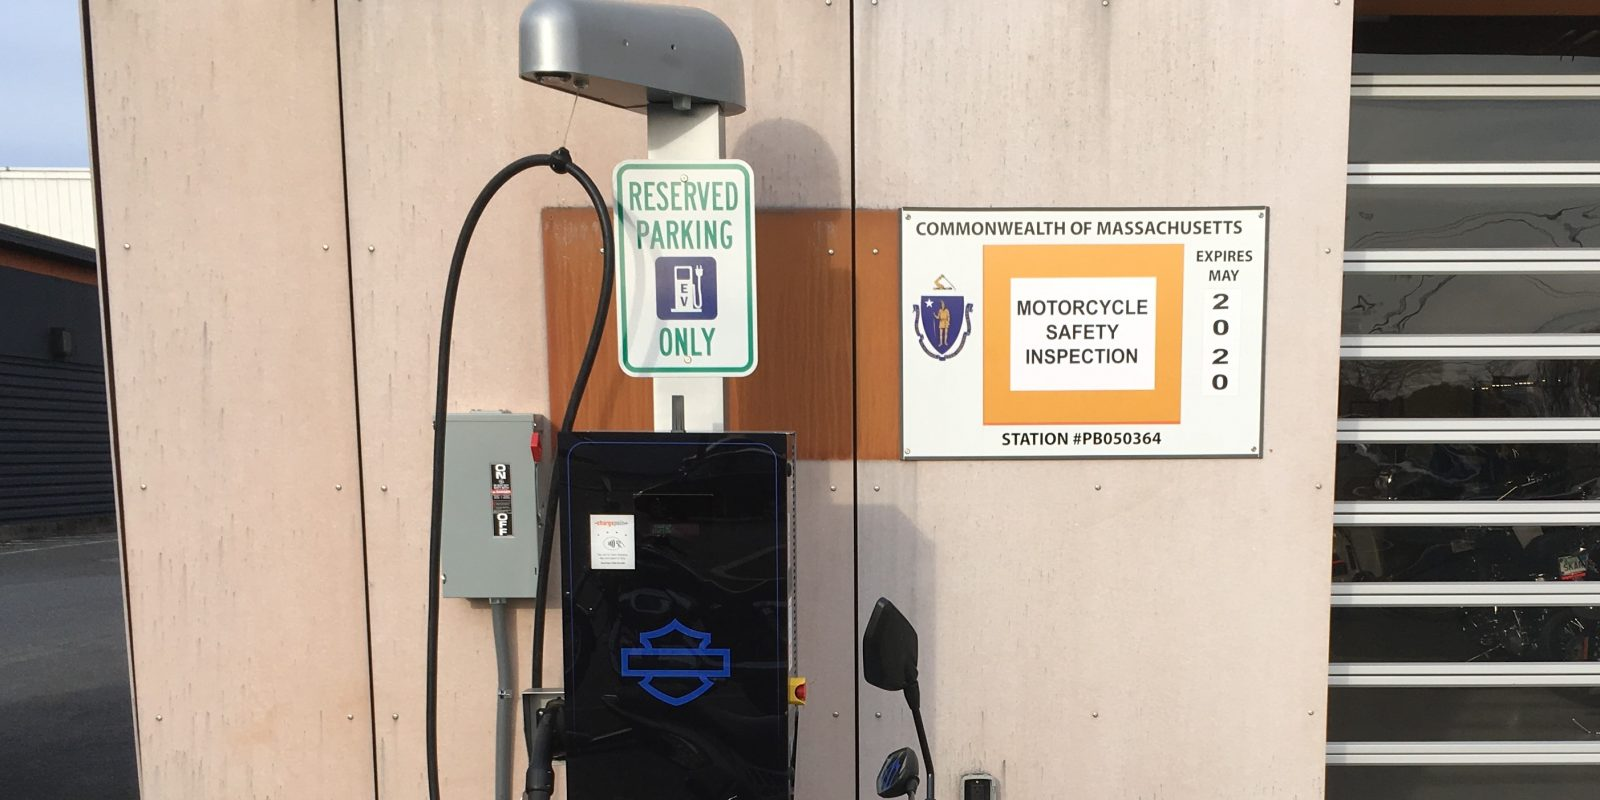 Harley Davidson Dealers Prepping For Electric Vehicles Installing Ev Chargers